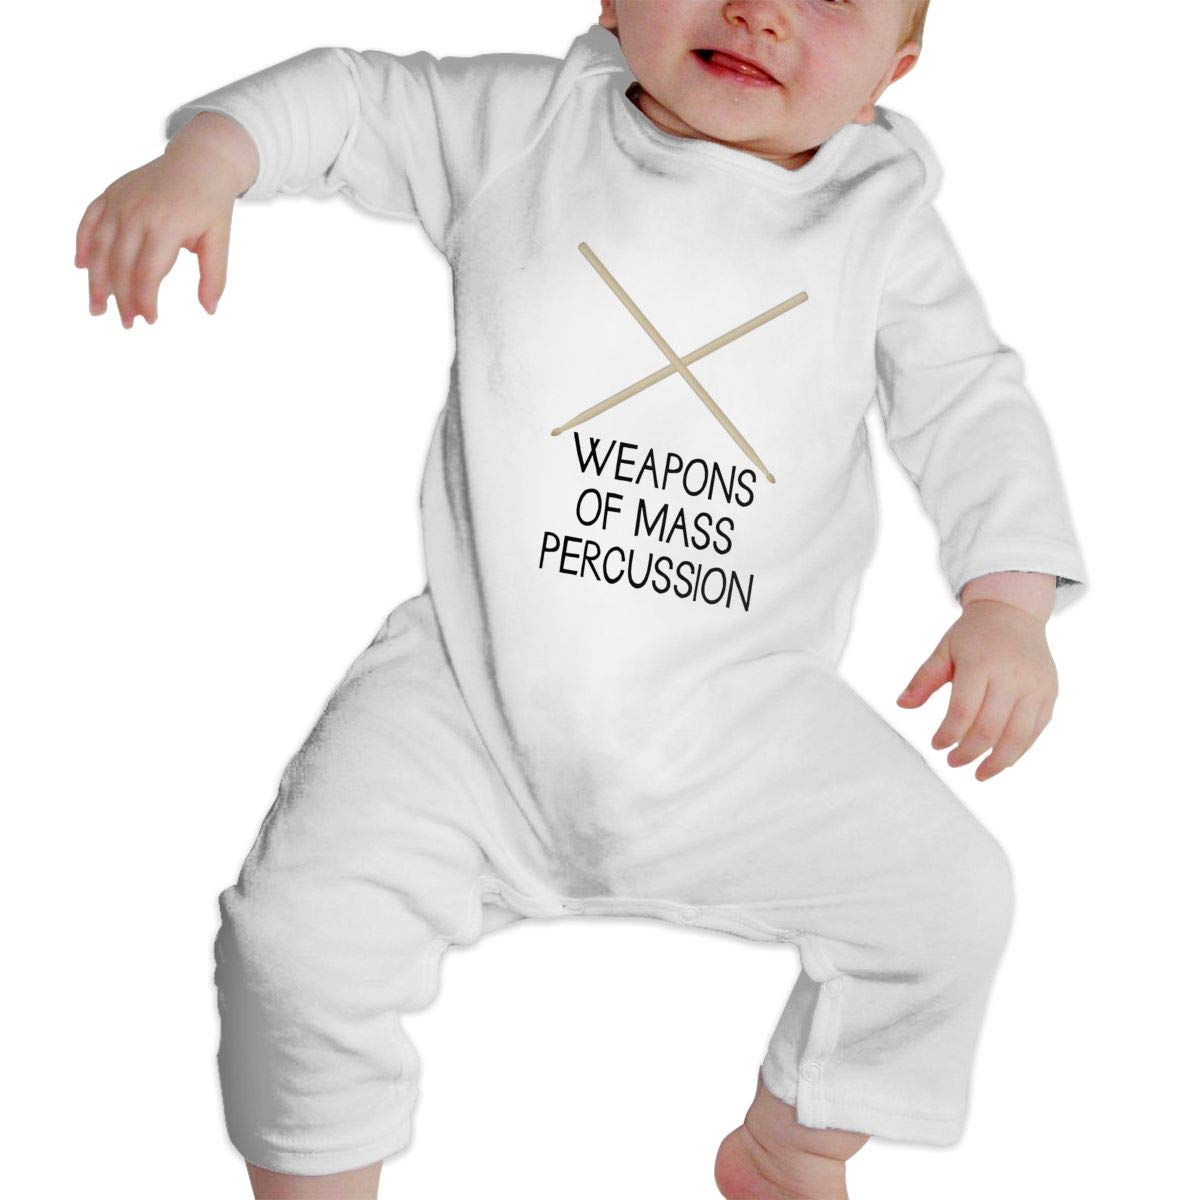 MiNgosRY Weapon of Mass Percussion Newborn Baby Long Sleeve Bodysuits Rompers Outfits